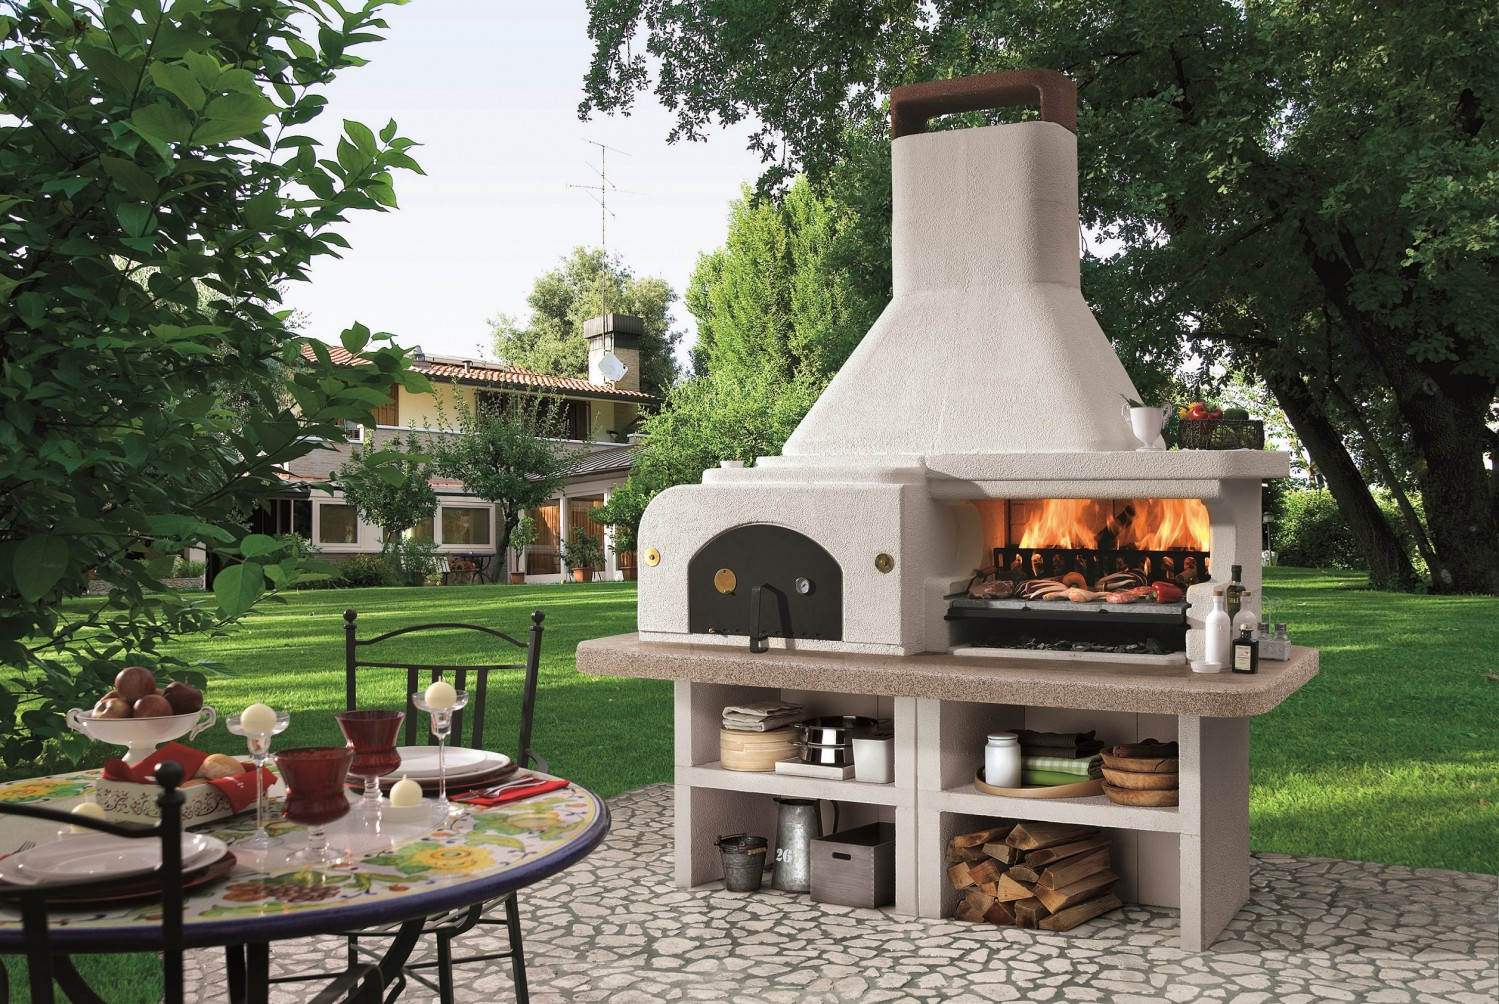 palazzetti gargano 3 grillkamin der gartenkamin mit pizzaofen. Black Bedroom Furniture Sets. Home Design Ideas